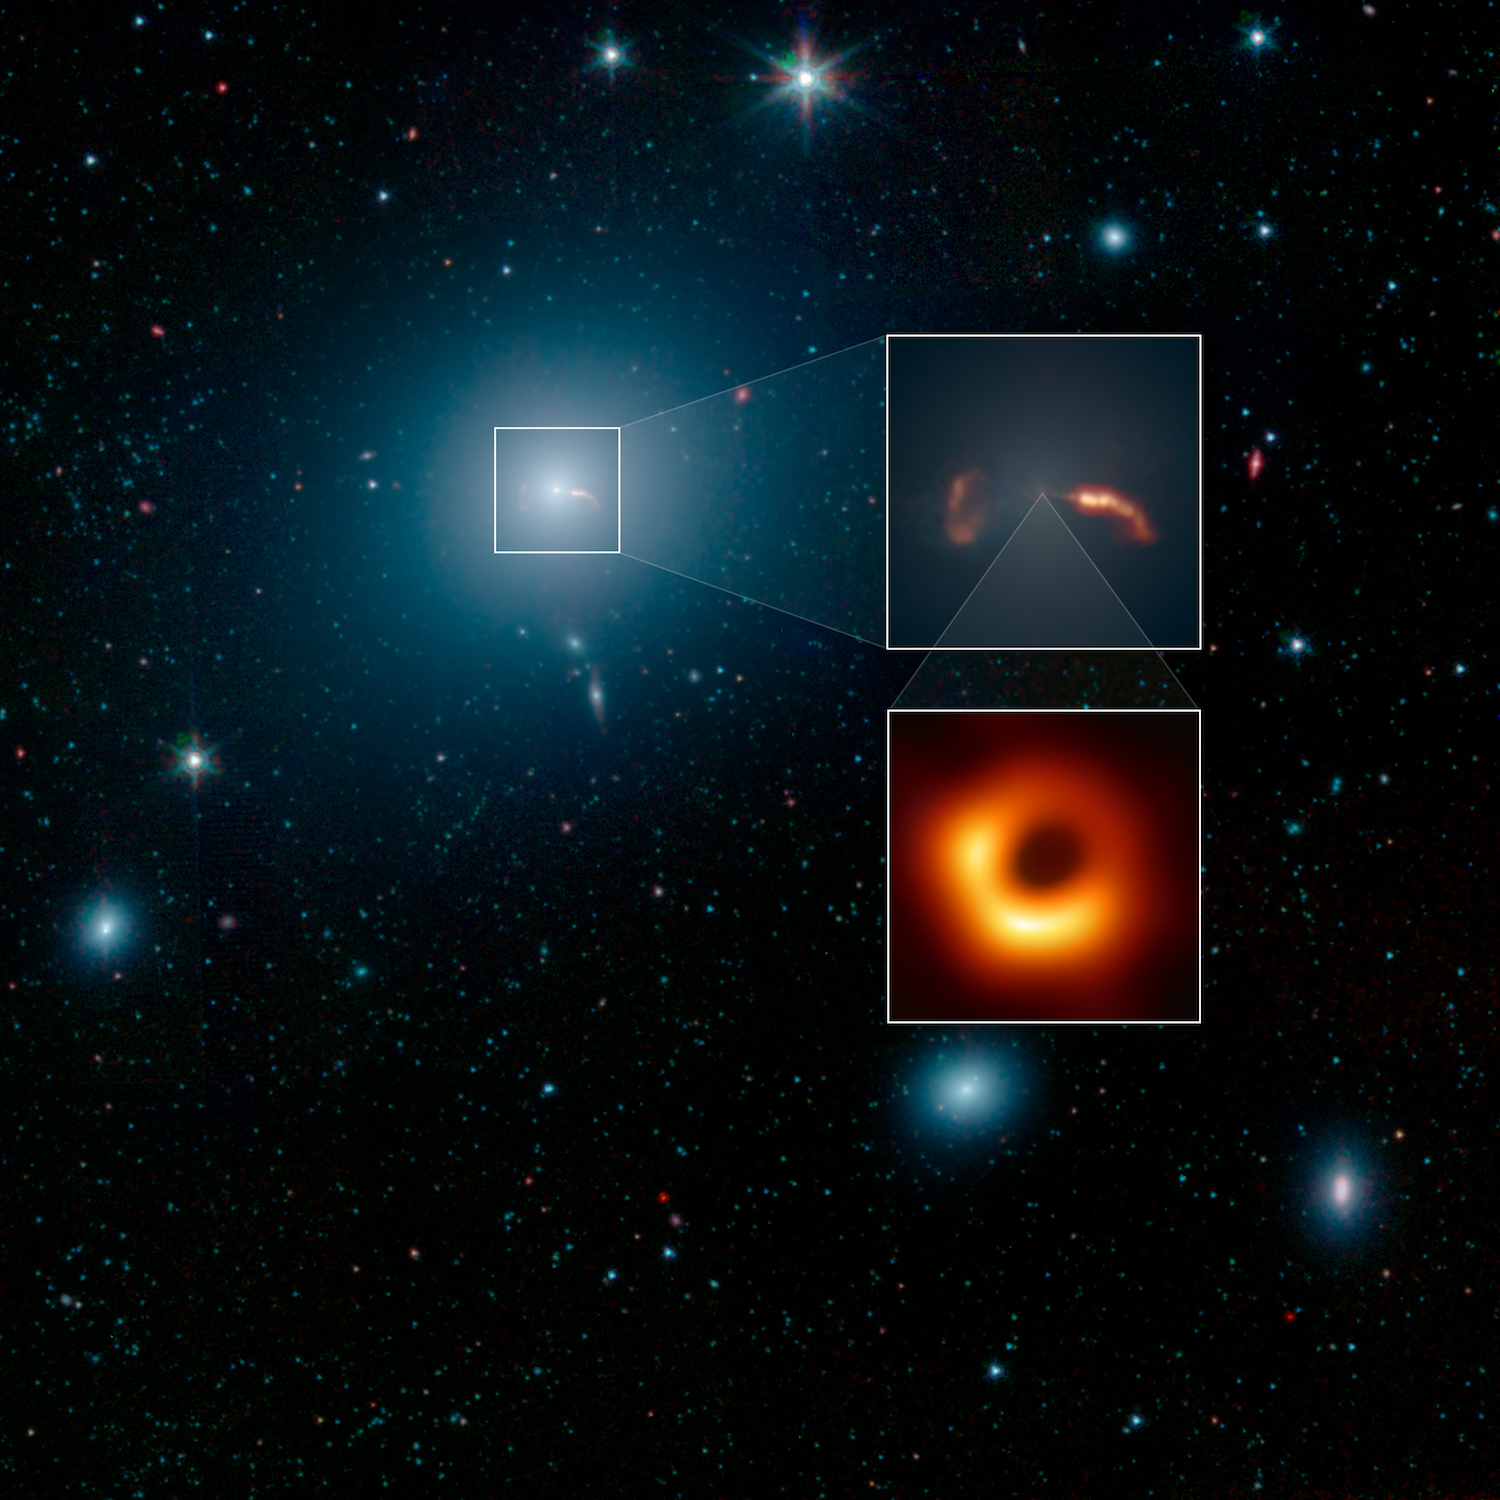 Black Hole Spits Out High-Energy Jets at Near Light-Speed